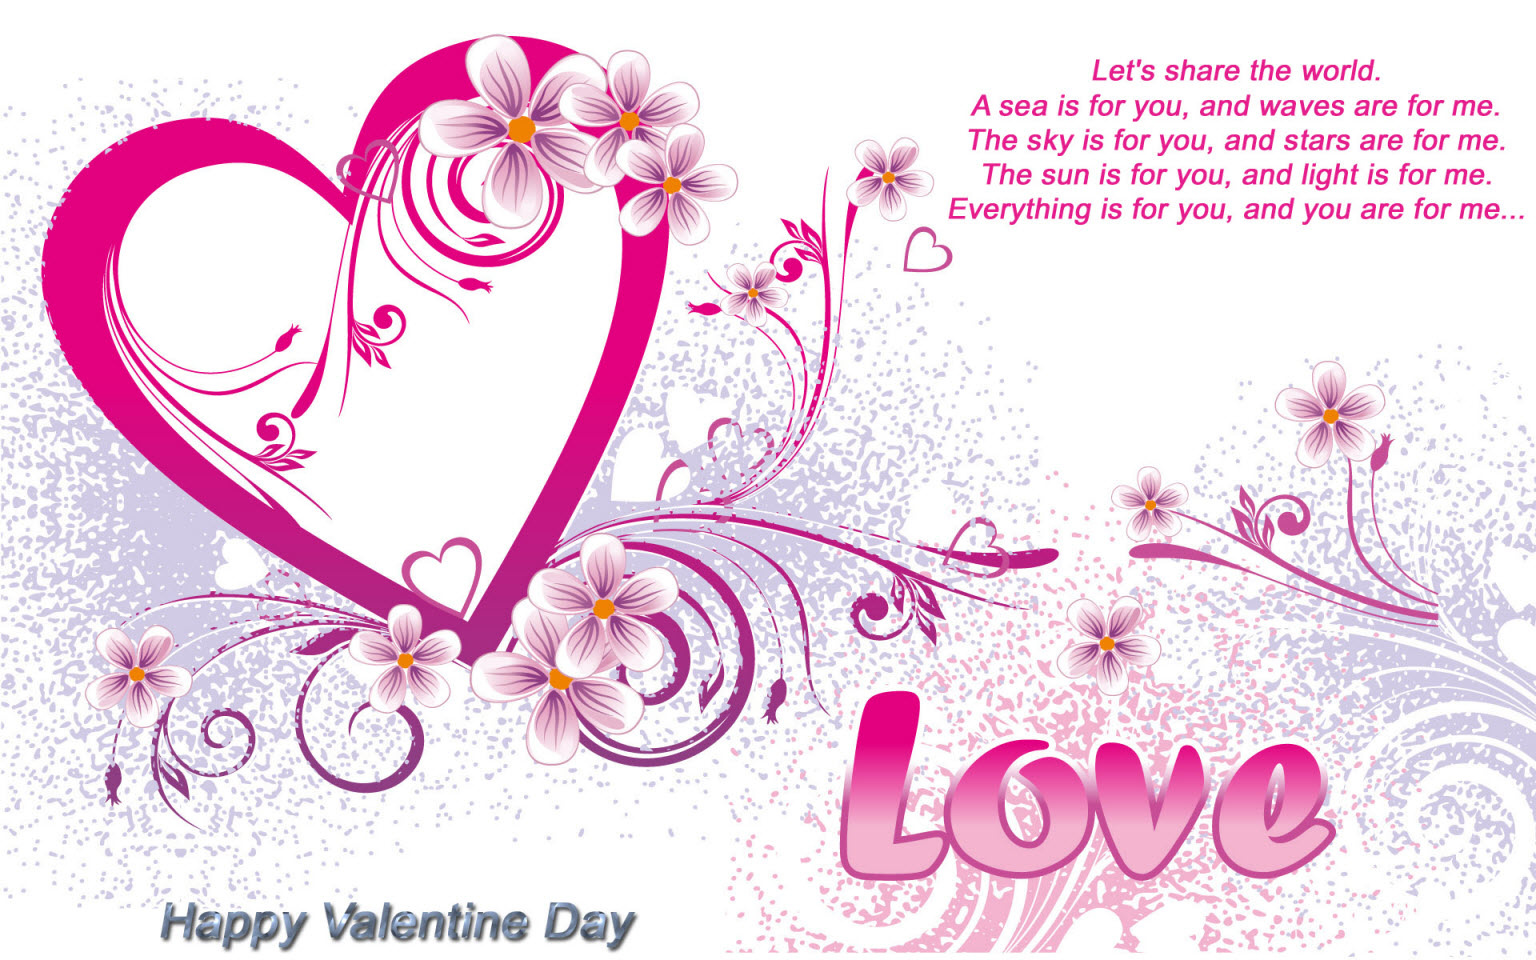 Top 20 Valentines Day Card Messages – Valentine Cards with Messages